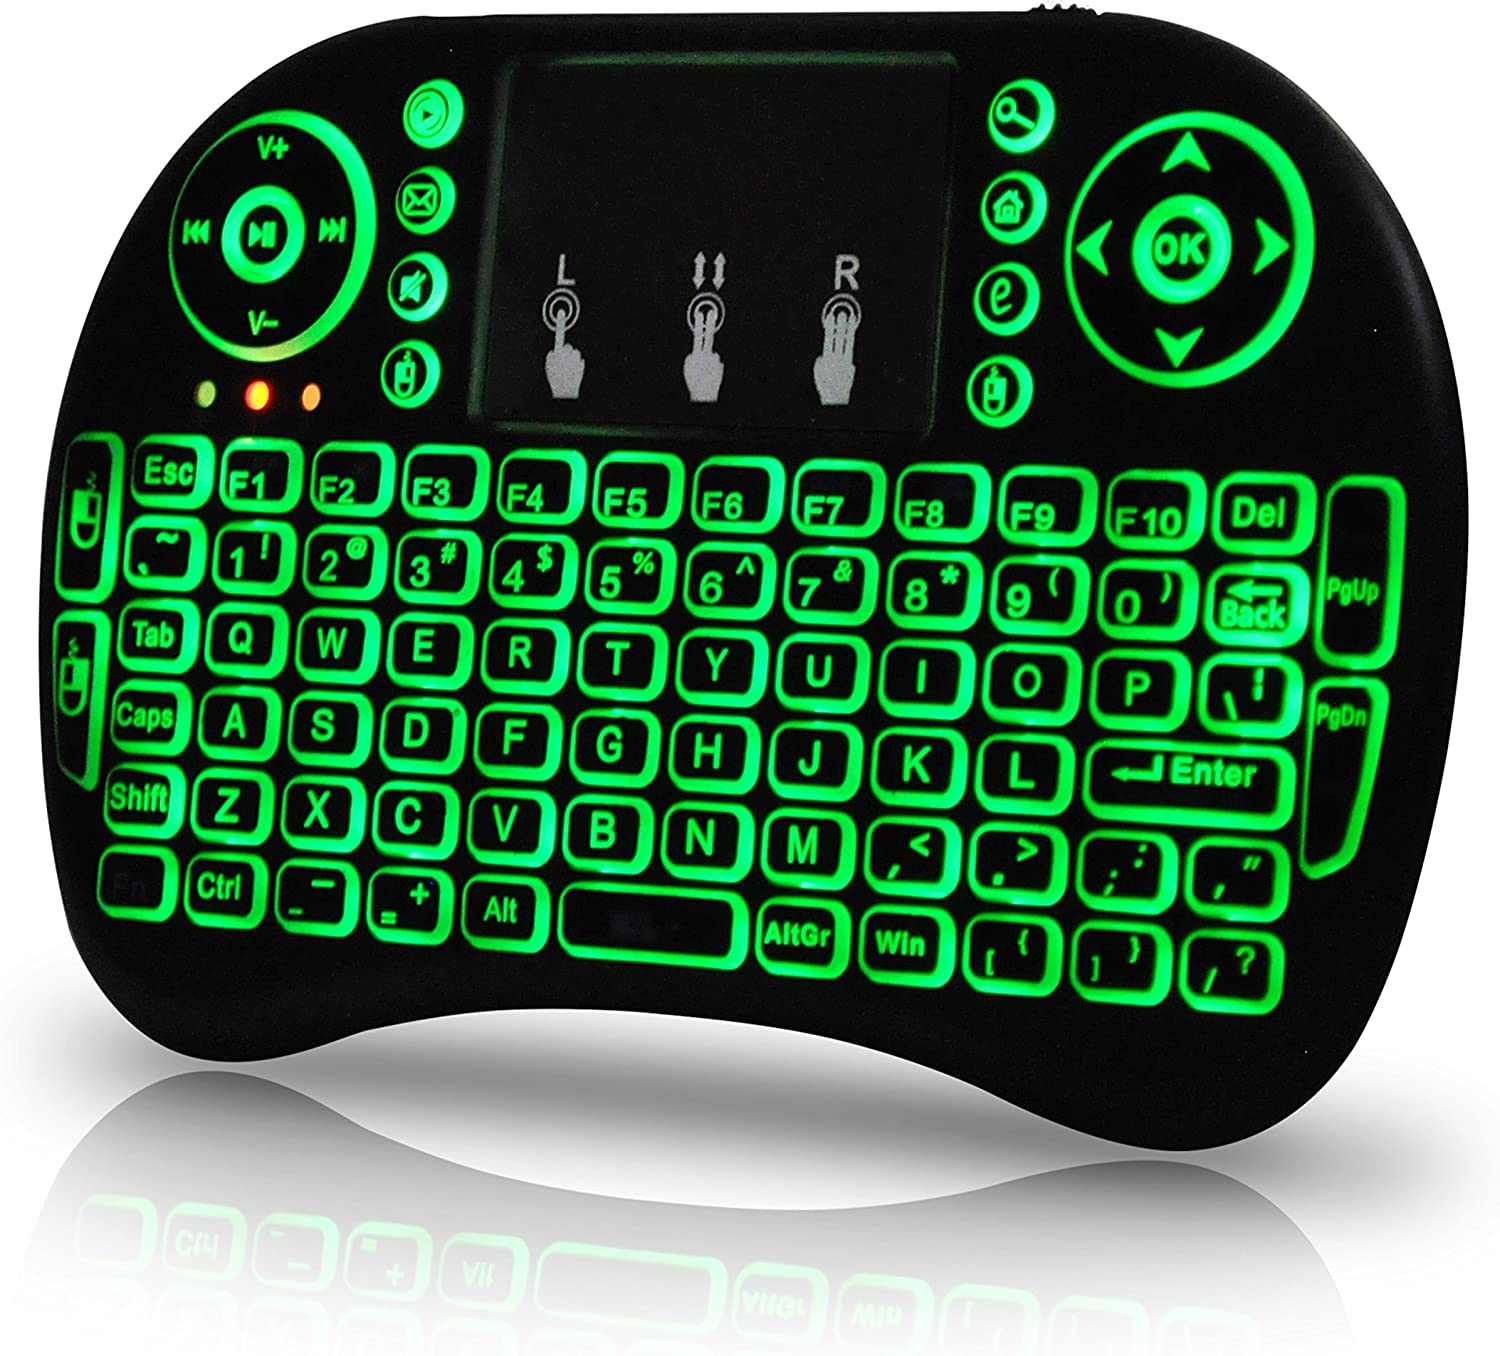 Universal i9 2.4Ghz USB Wireless Keyboard Mouse for Linux Chrome Mac Windows 10 Computer or Android TV Box - Rechargeable Battery - Backlit, Green